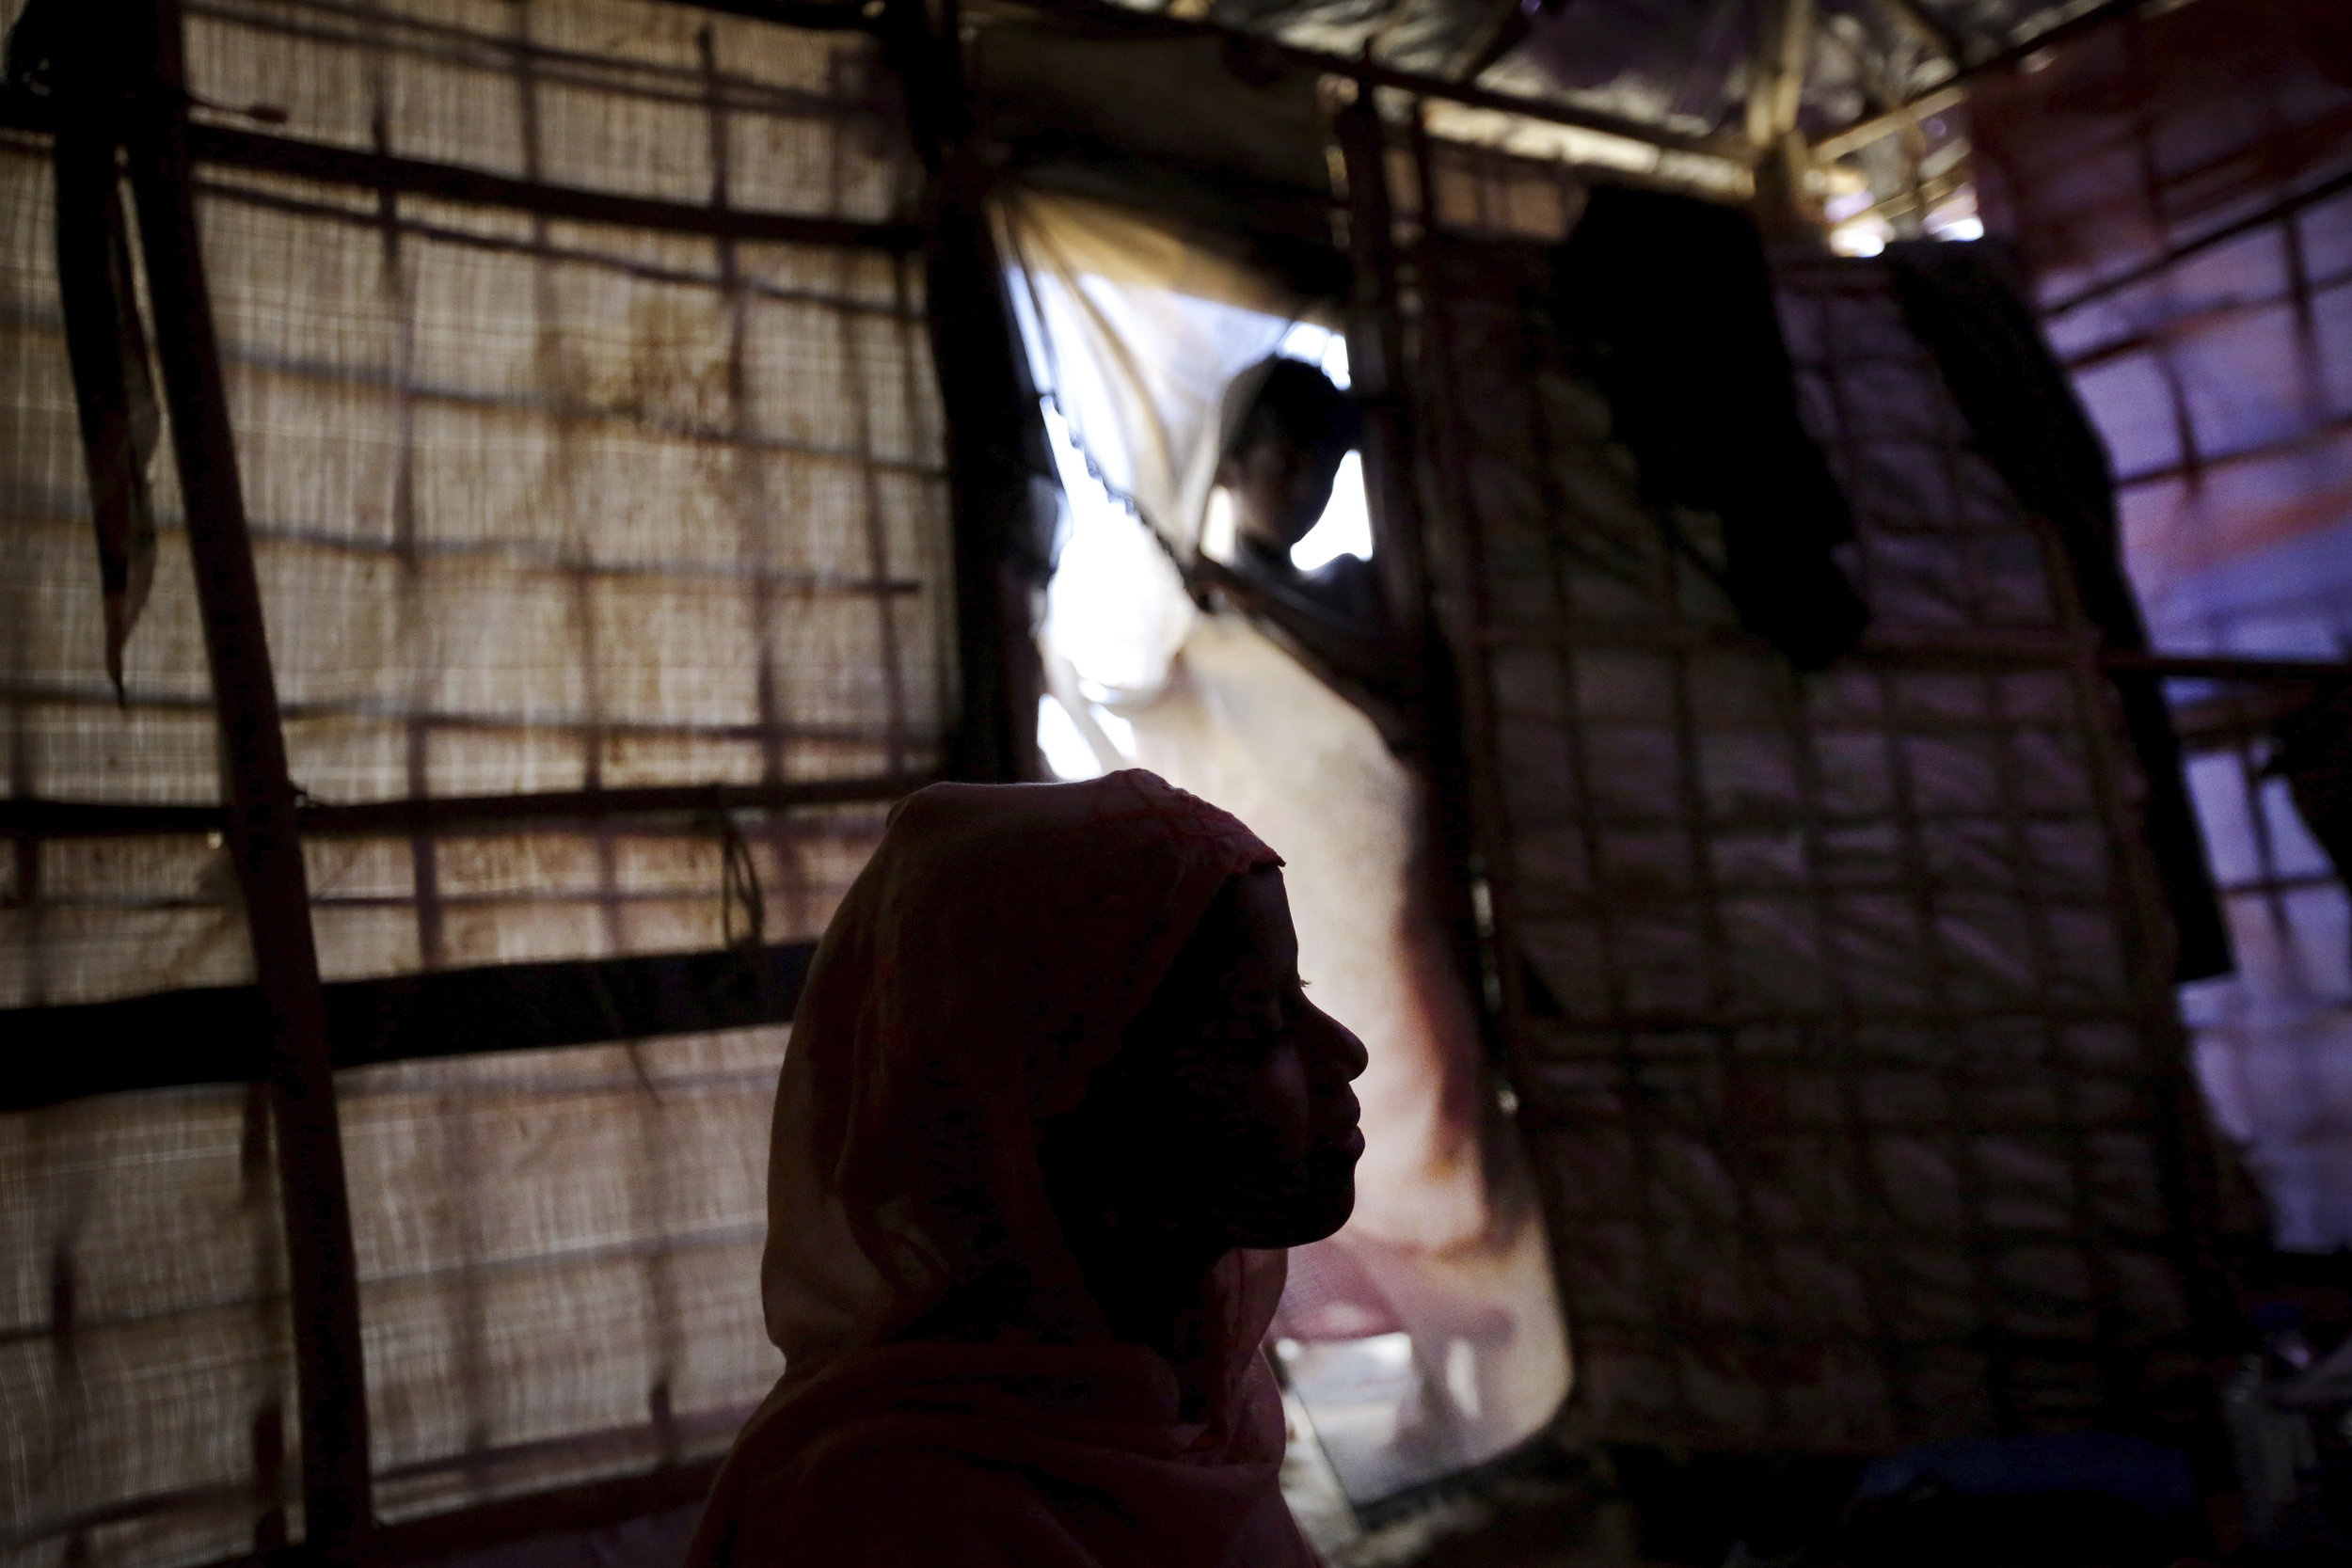 R, a 13 year-old Rohingya girl, is seen in silhouette in her tent in Kutupalong refugee camp in Bangladesh. Photo Credit: Wong Maye-E/AP Photo.